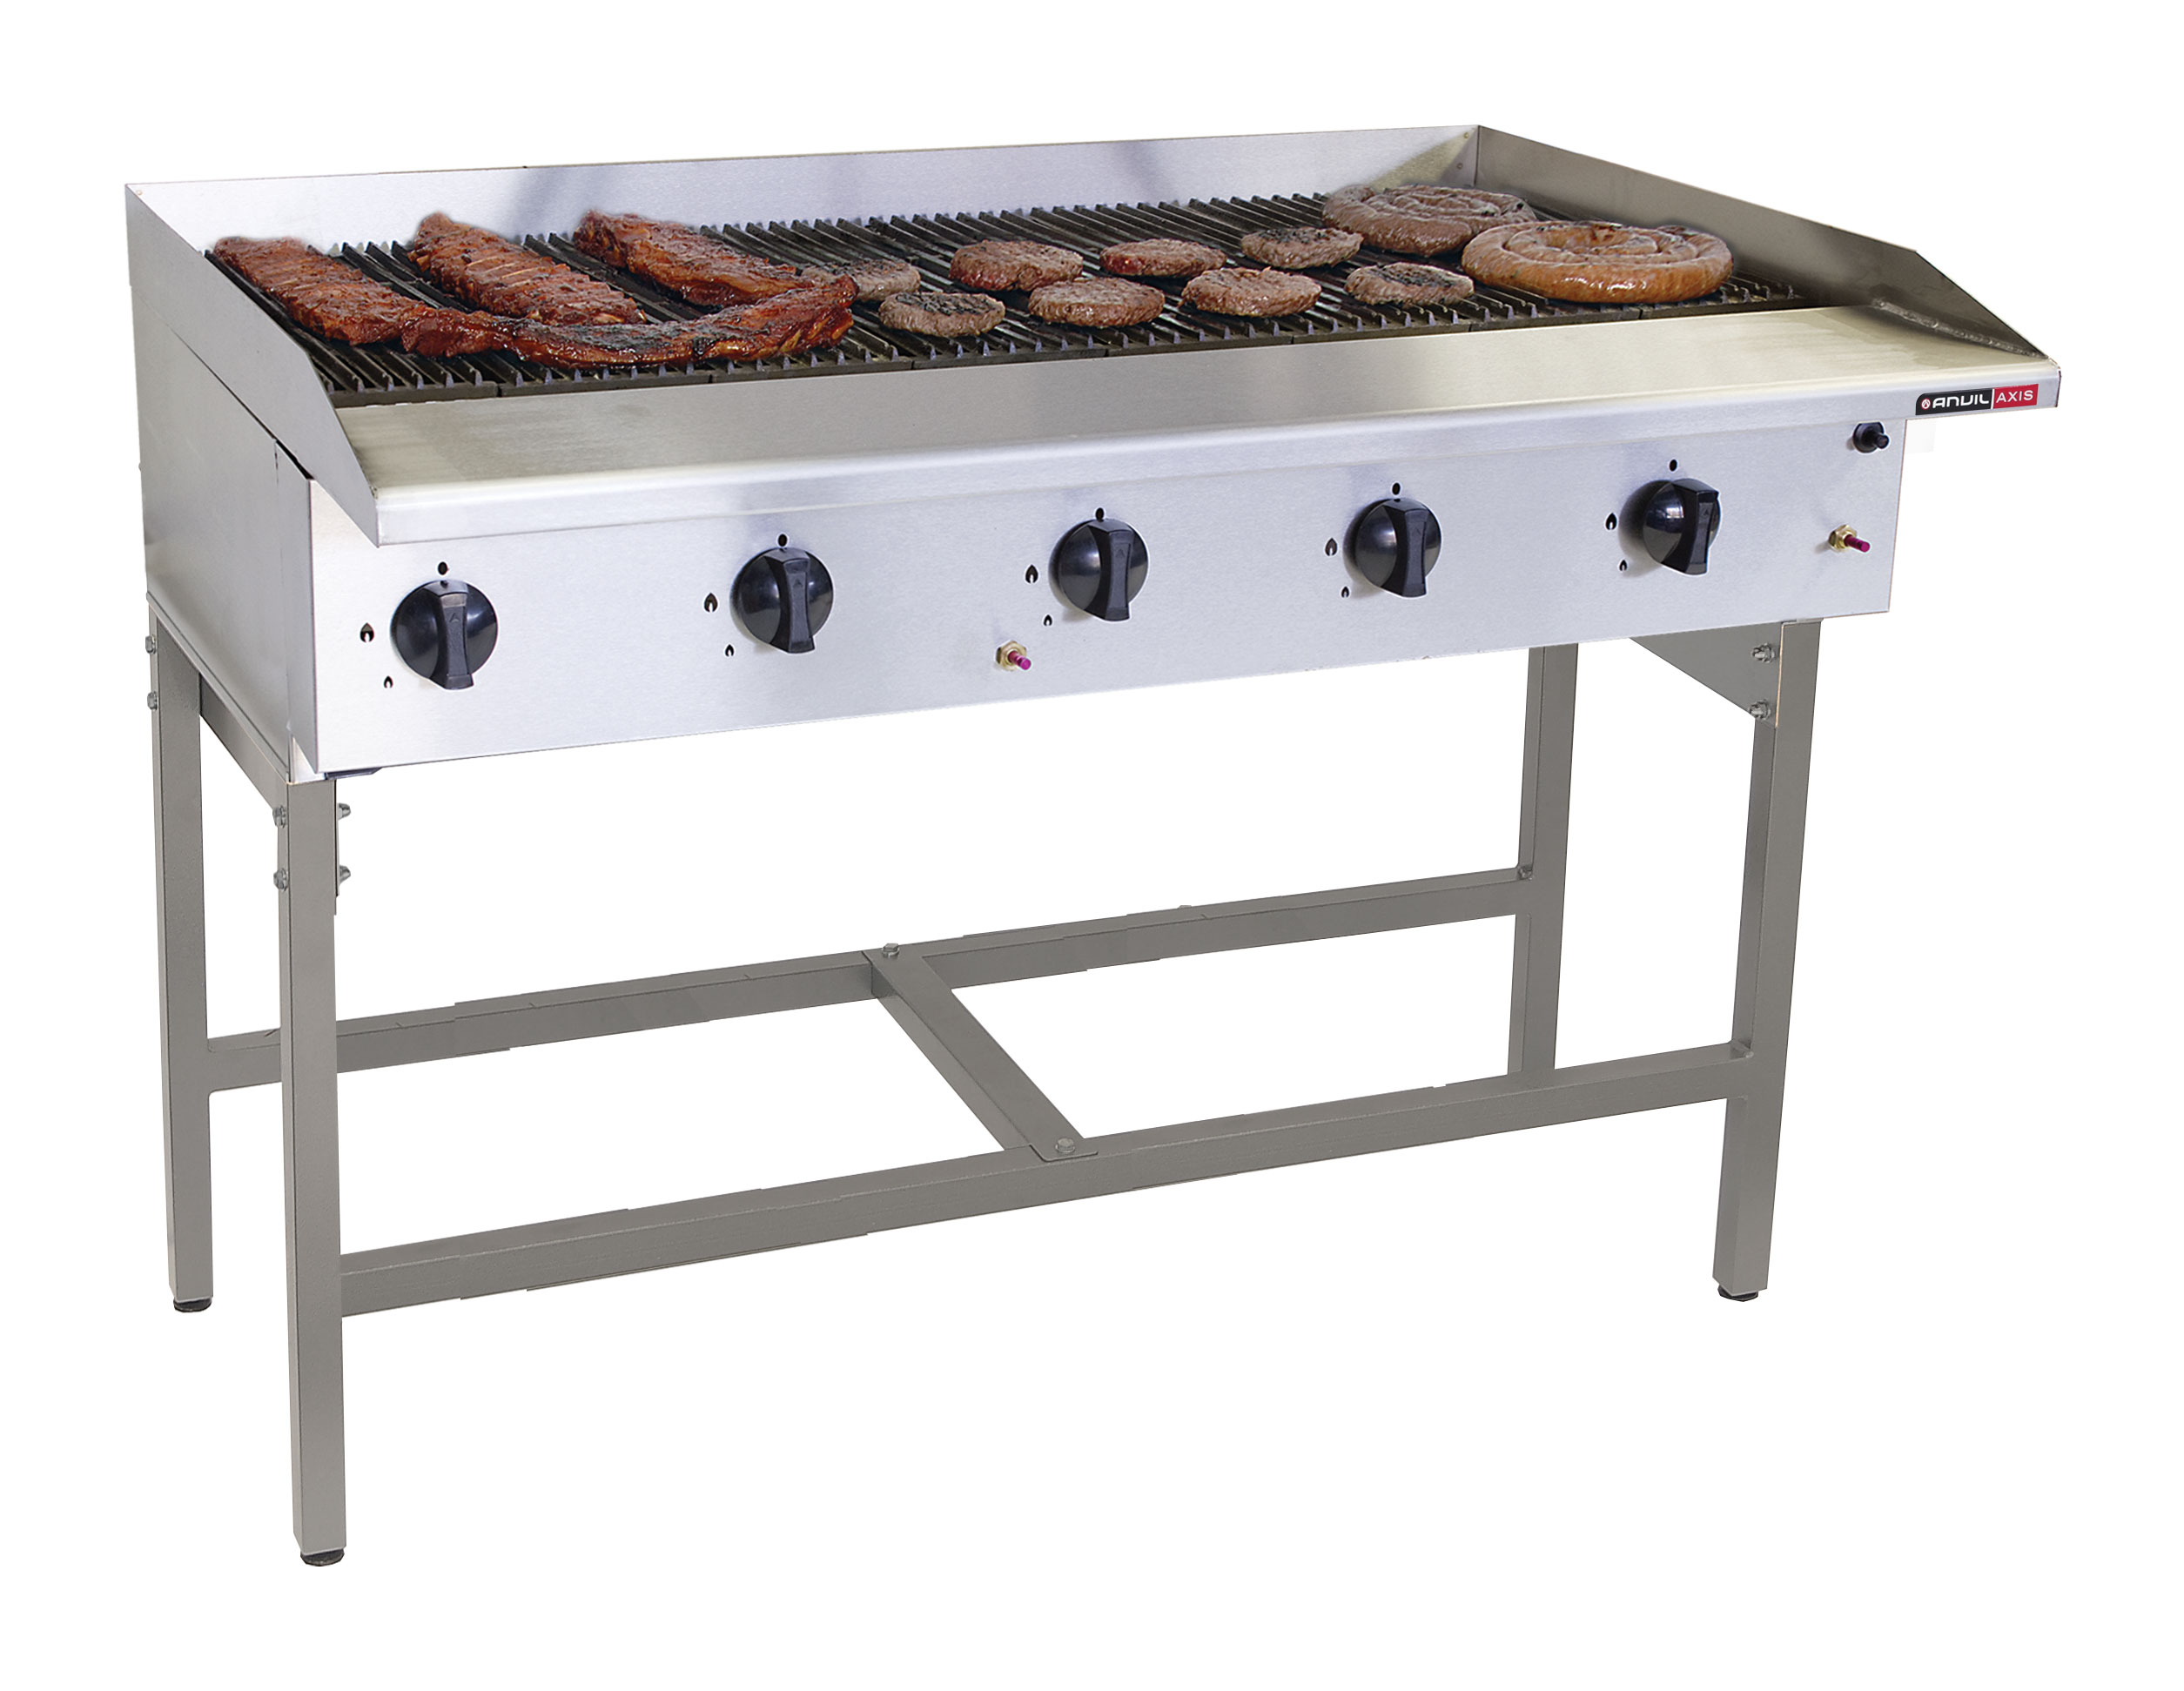 GAS GRILLER ANVIL - 10 BURNER RADIANT - FREE STANDING